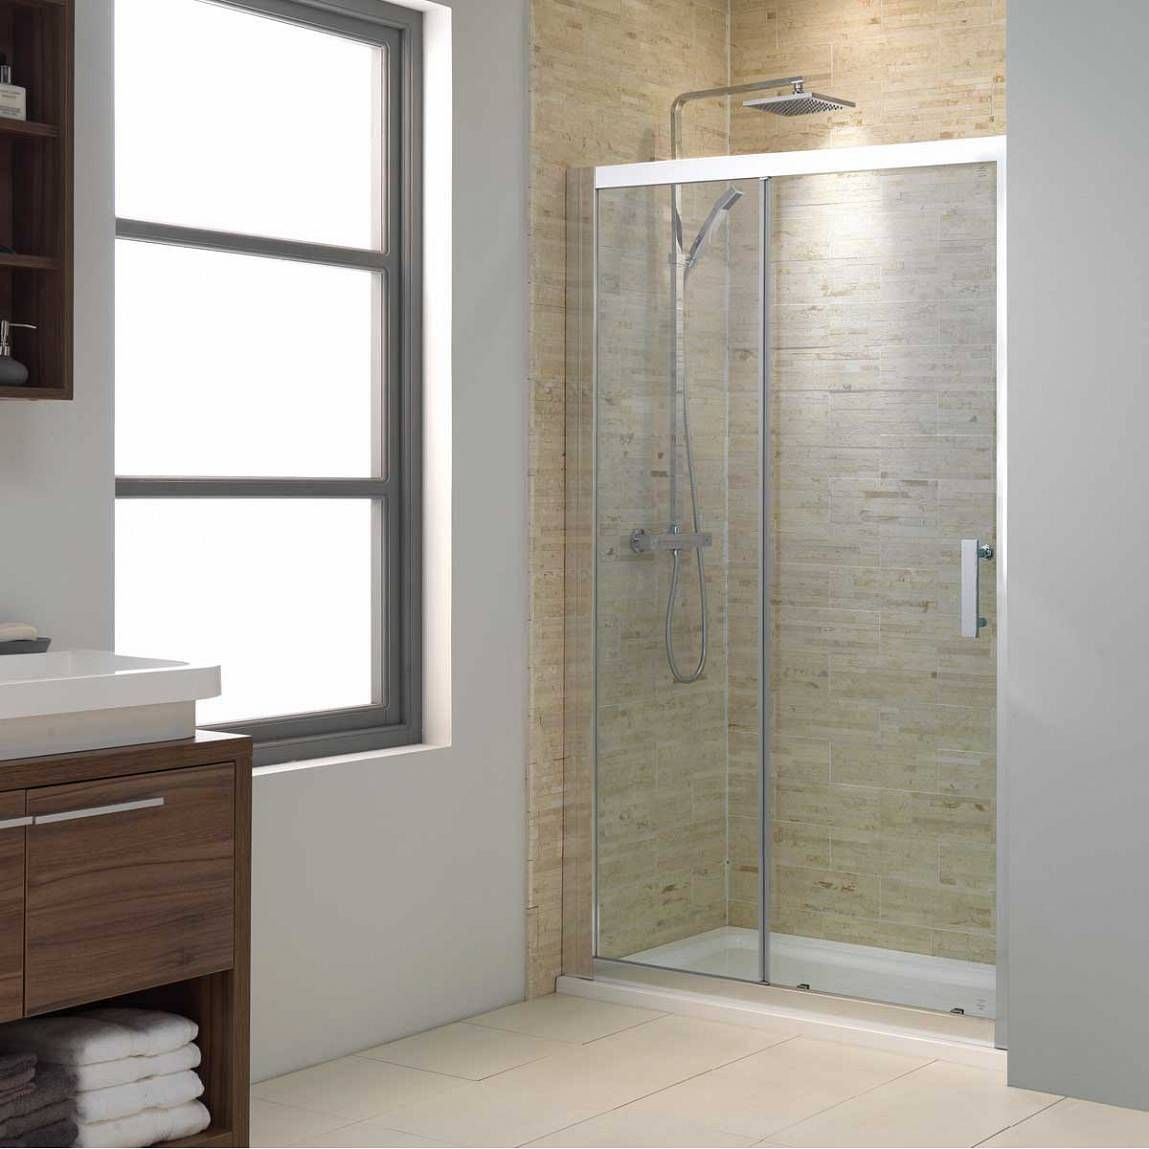 V8 Framed Sliding Shower Door 1200 Sliding Shower Door Bathroom Design Decor Shower Doors